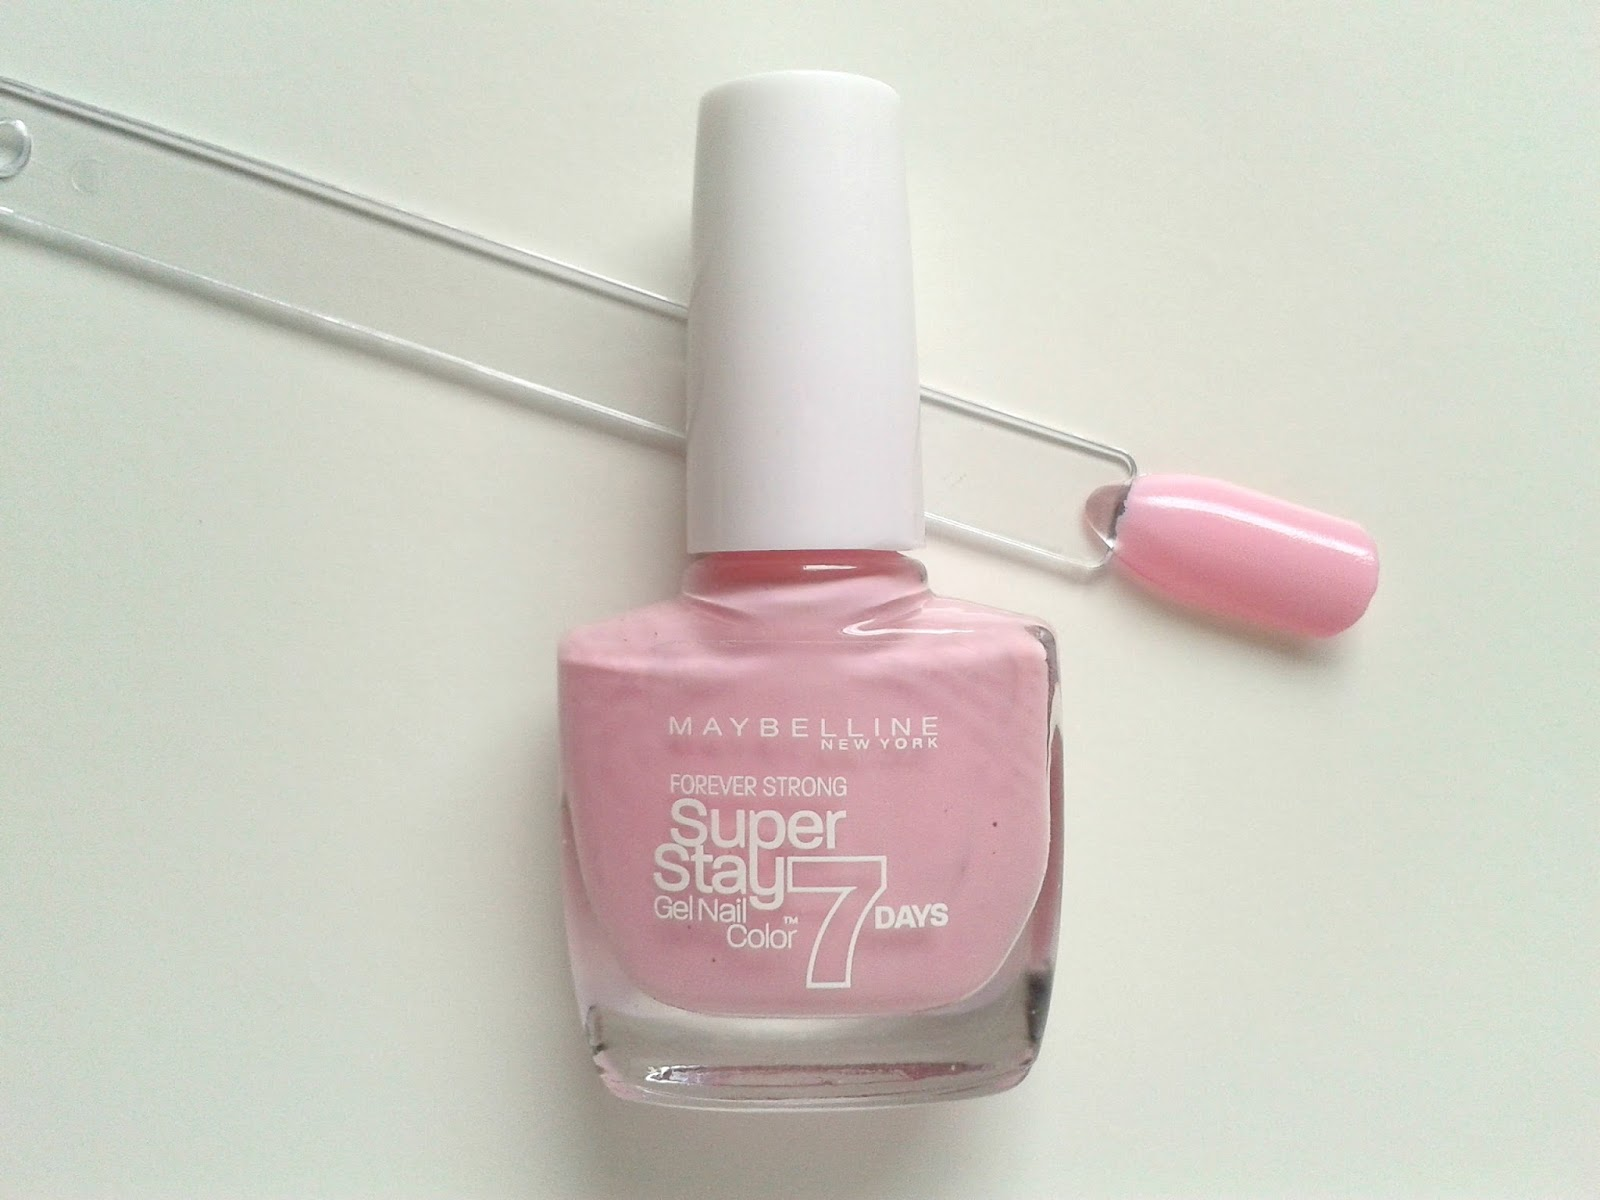 Maybelline New York Super Stay 7 Days Gel Nail Colours Pink in the Park Beauty Review Swatch